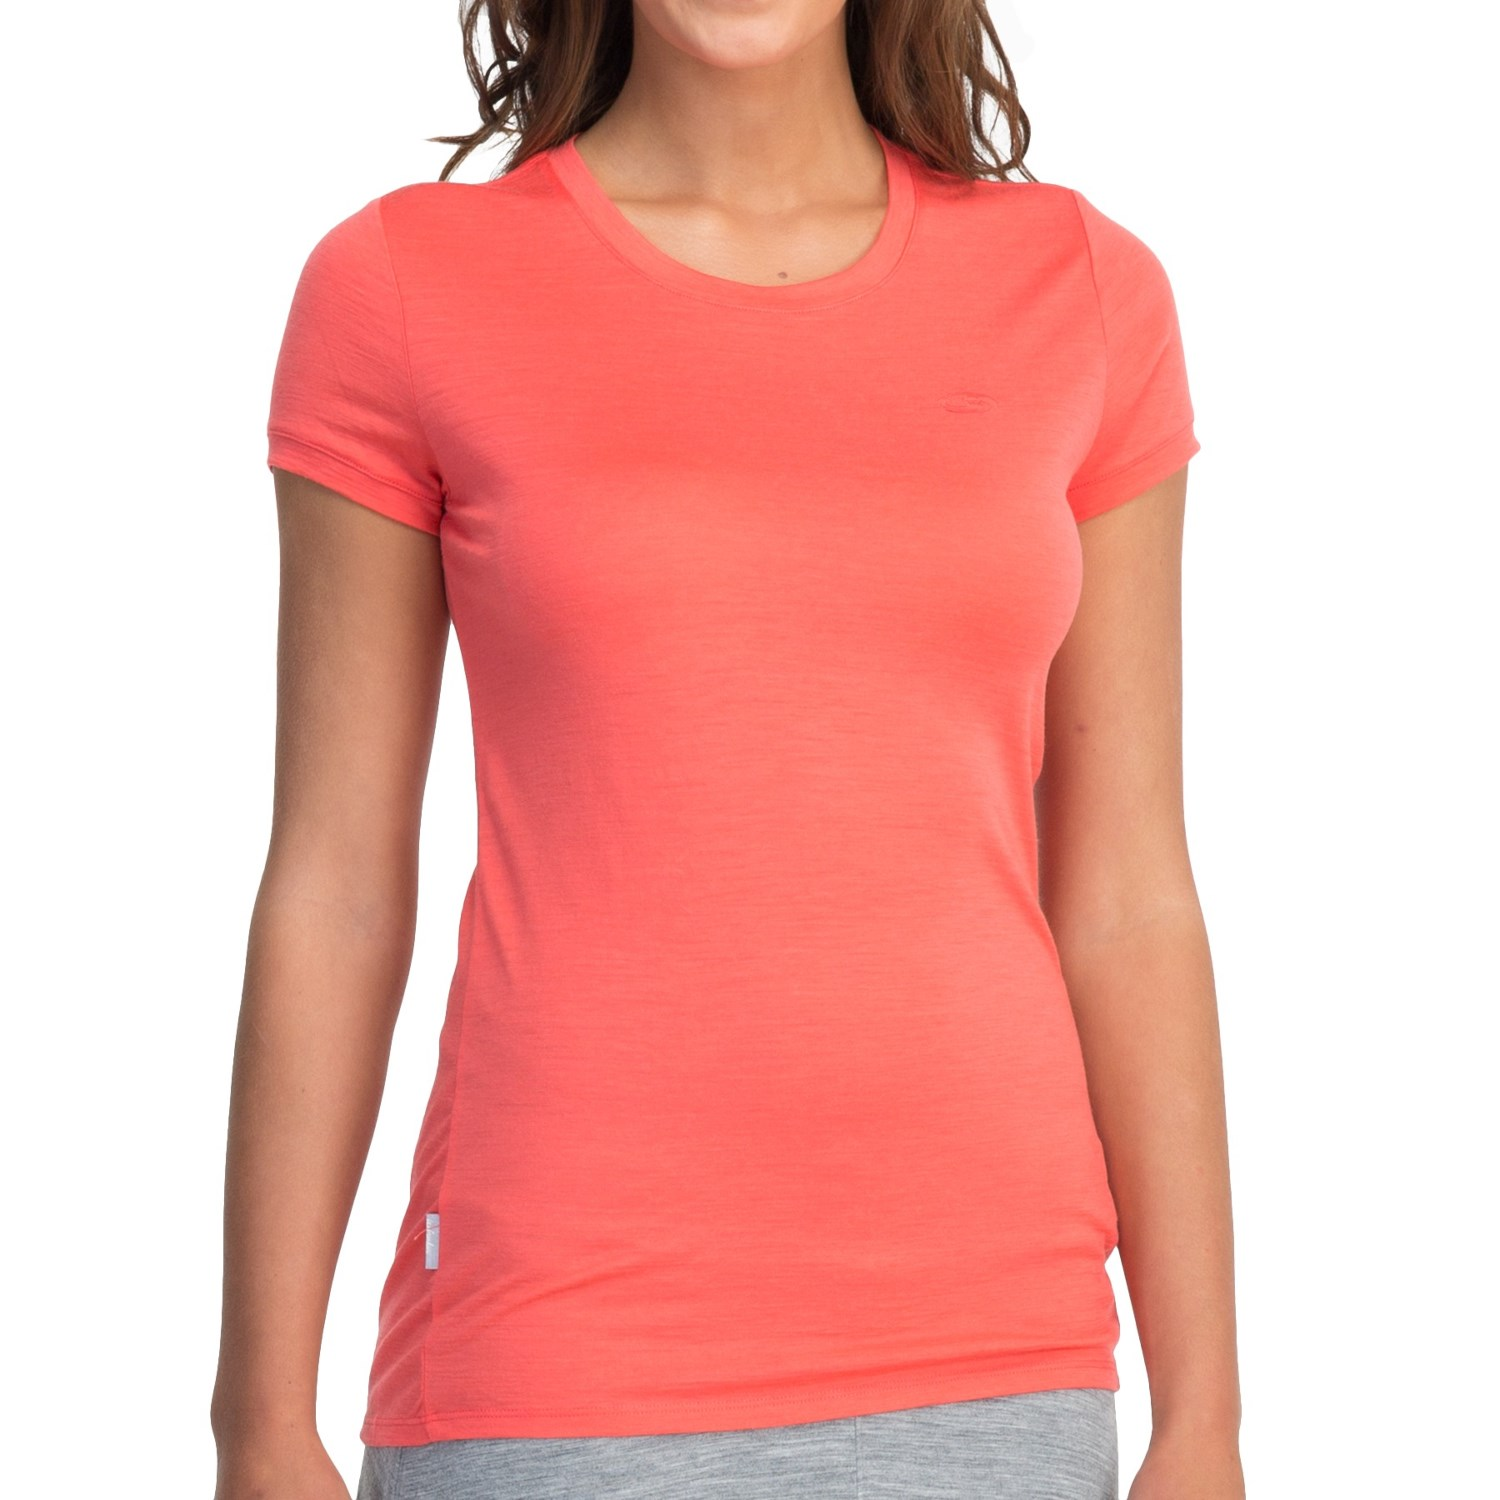 Icebreaker superfine 150 tech t lite t shirt merino wool for Merino wool shirt womens